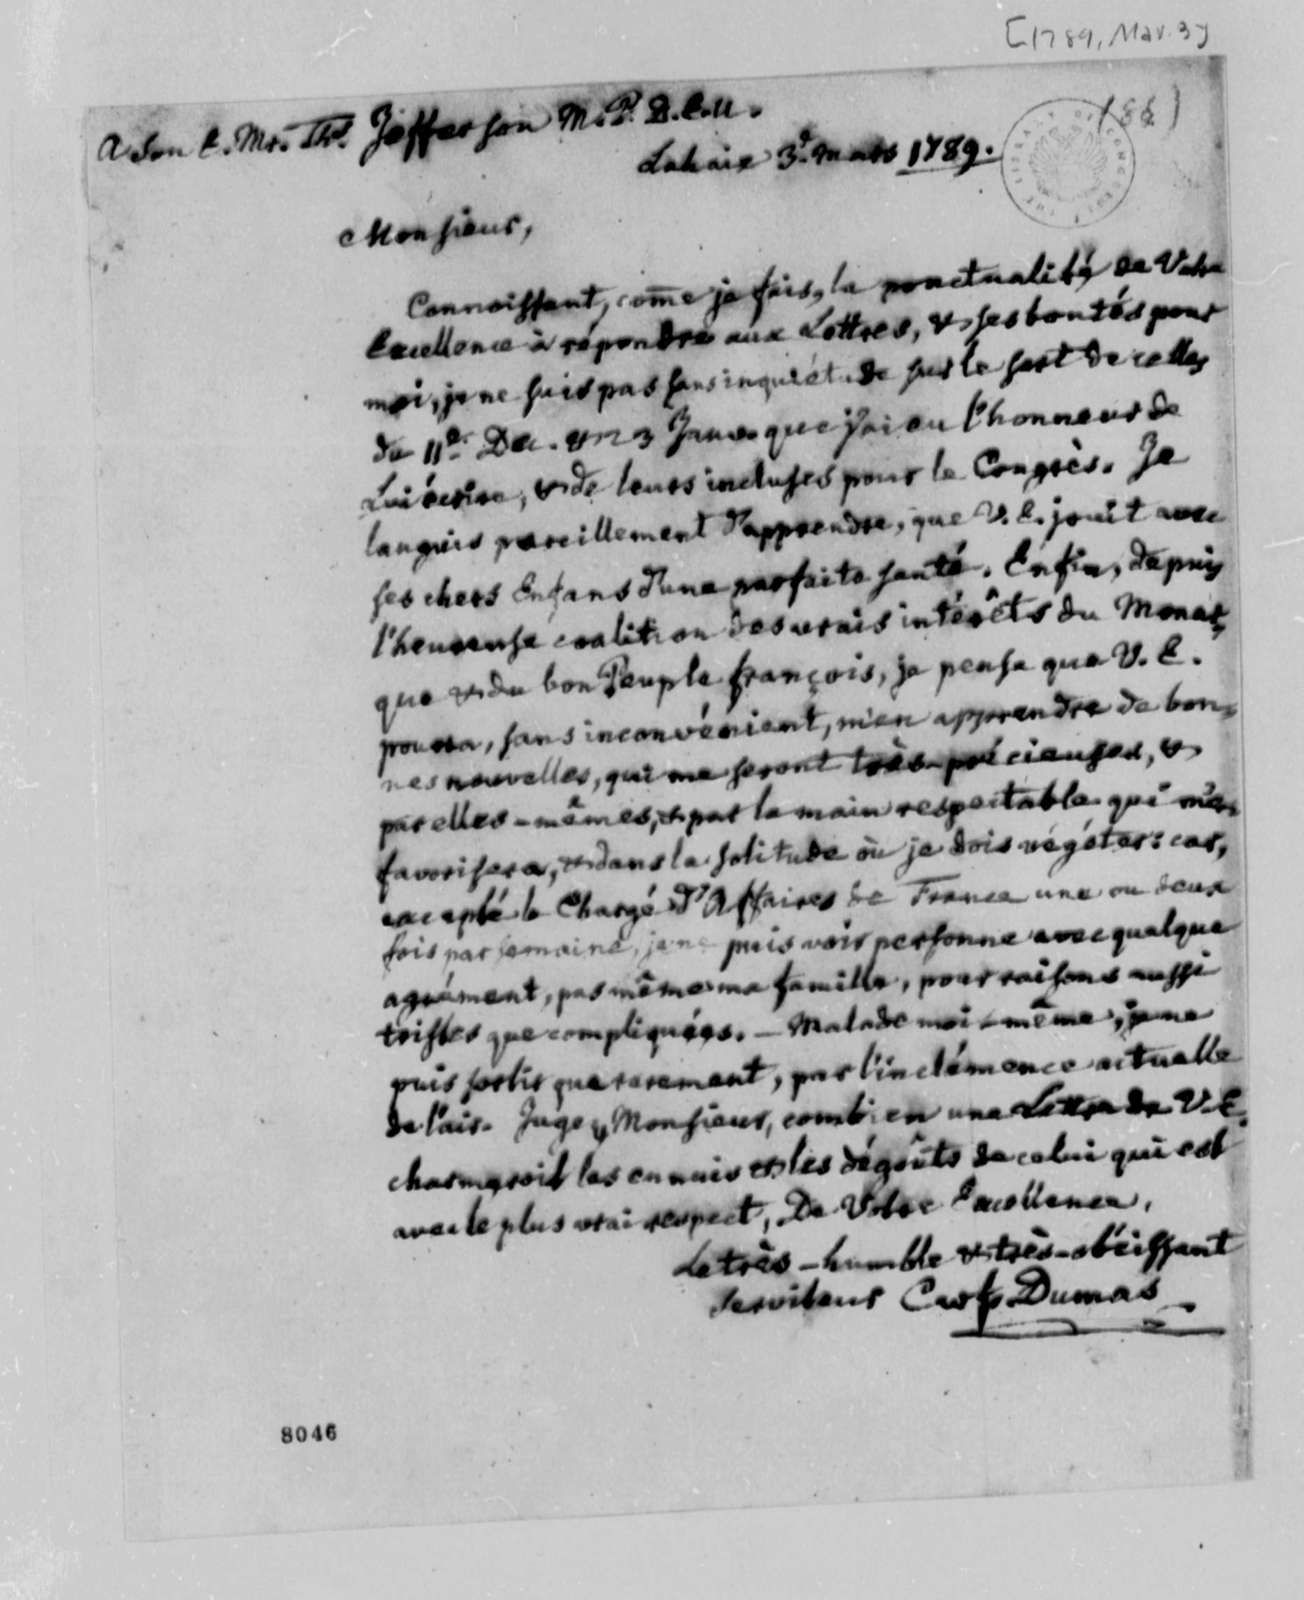 Charles William Frederic Dumas to Thomas Jefferson, March 3, 1789, in French